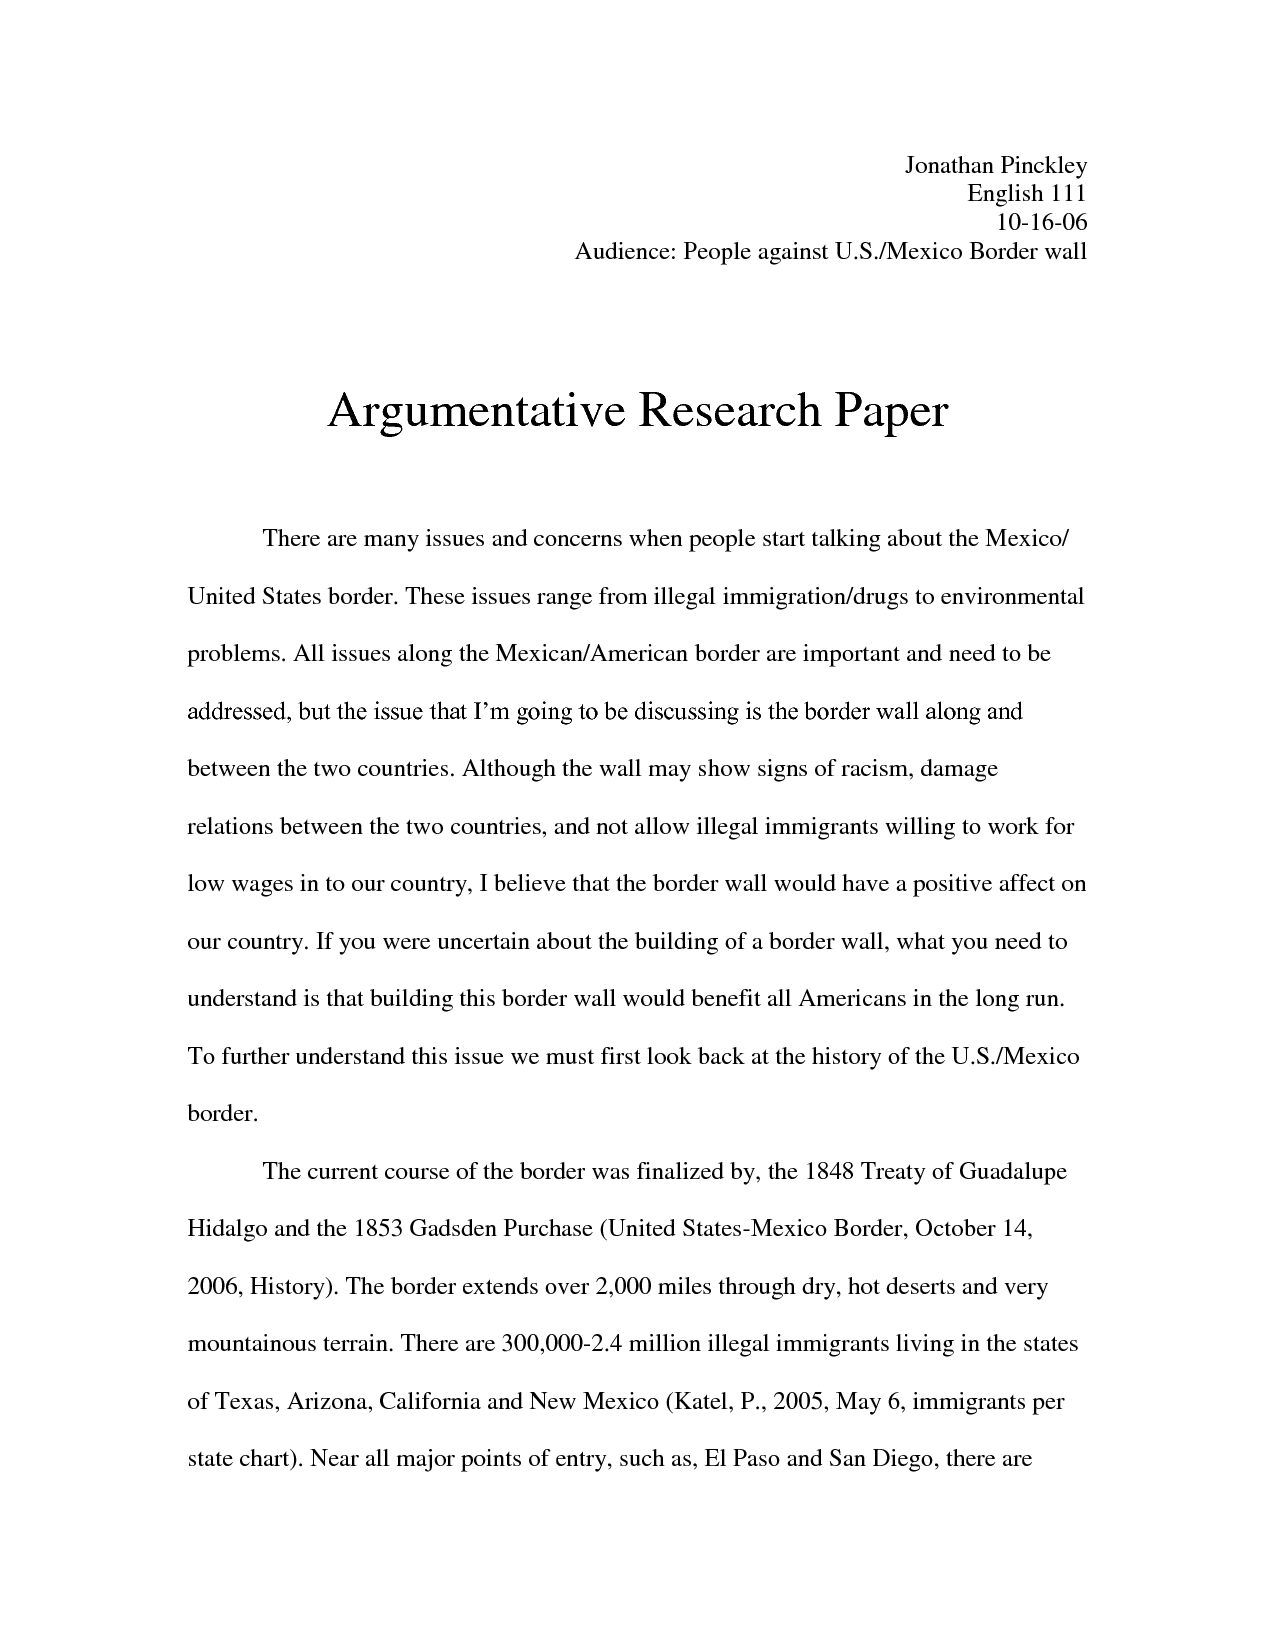 016 Research Paper Uncategorized Debate20y Argumentative Thesis High School Topics Sentence Starters Outline Worksheet Structure20 For Striking An Medical Easy Essay Full